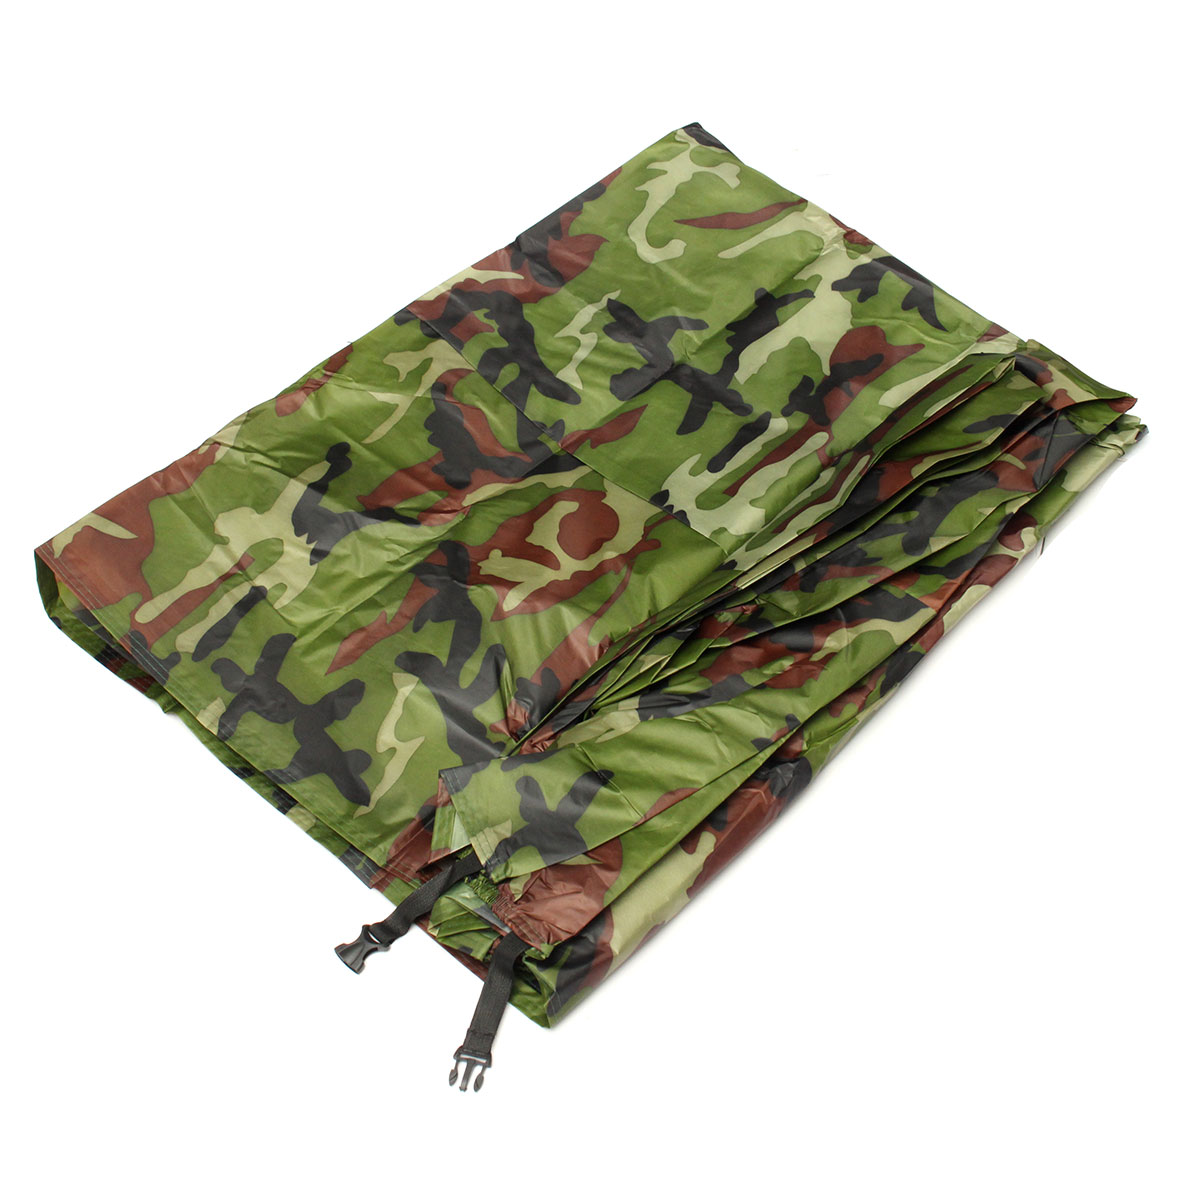 Size L Waterproof Outdoor UV Rain Cover Motorcycle Bike Protector Camouflage